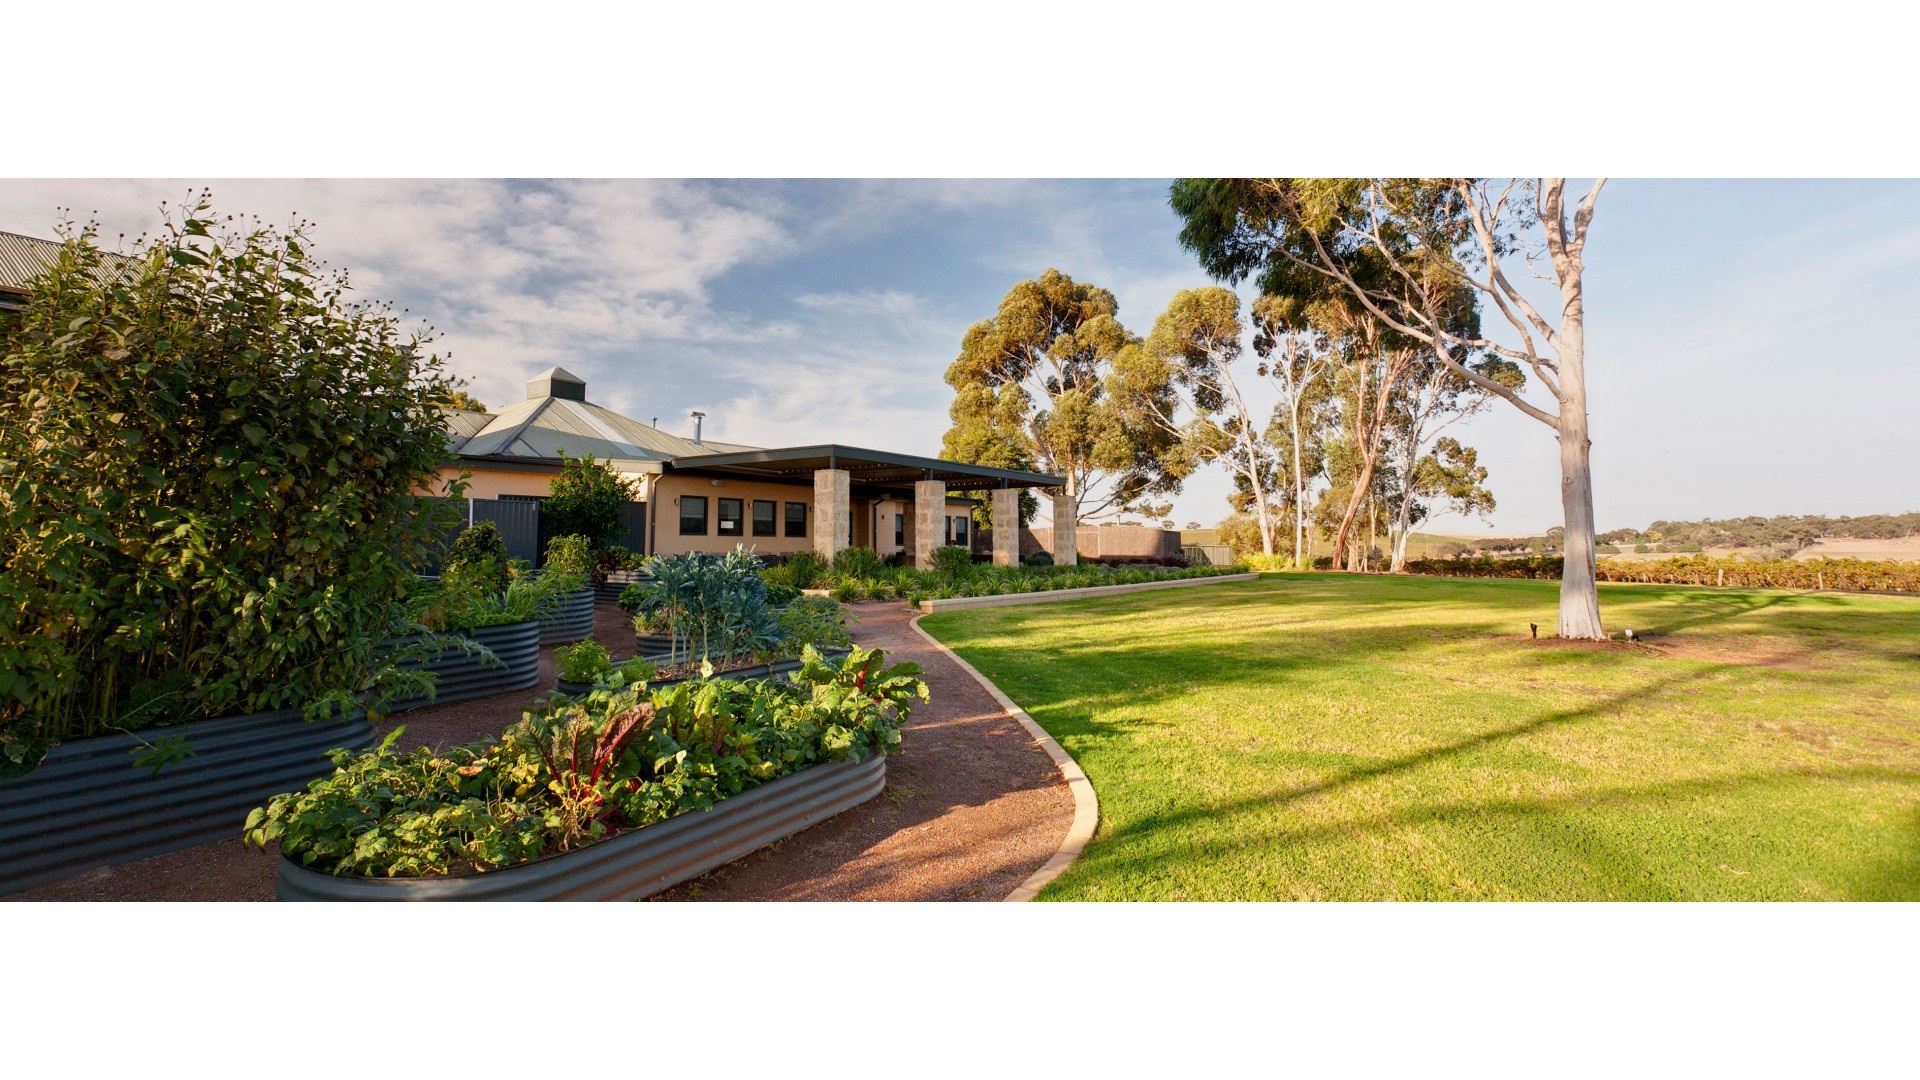 Connu The Louise Hotel, Australia - Boutique & Luxury Hotels PY82